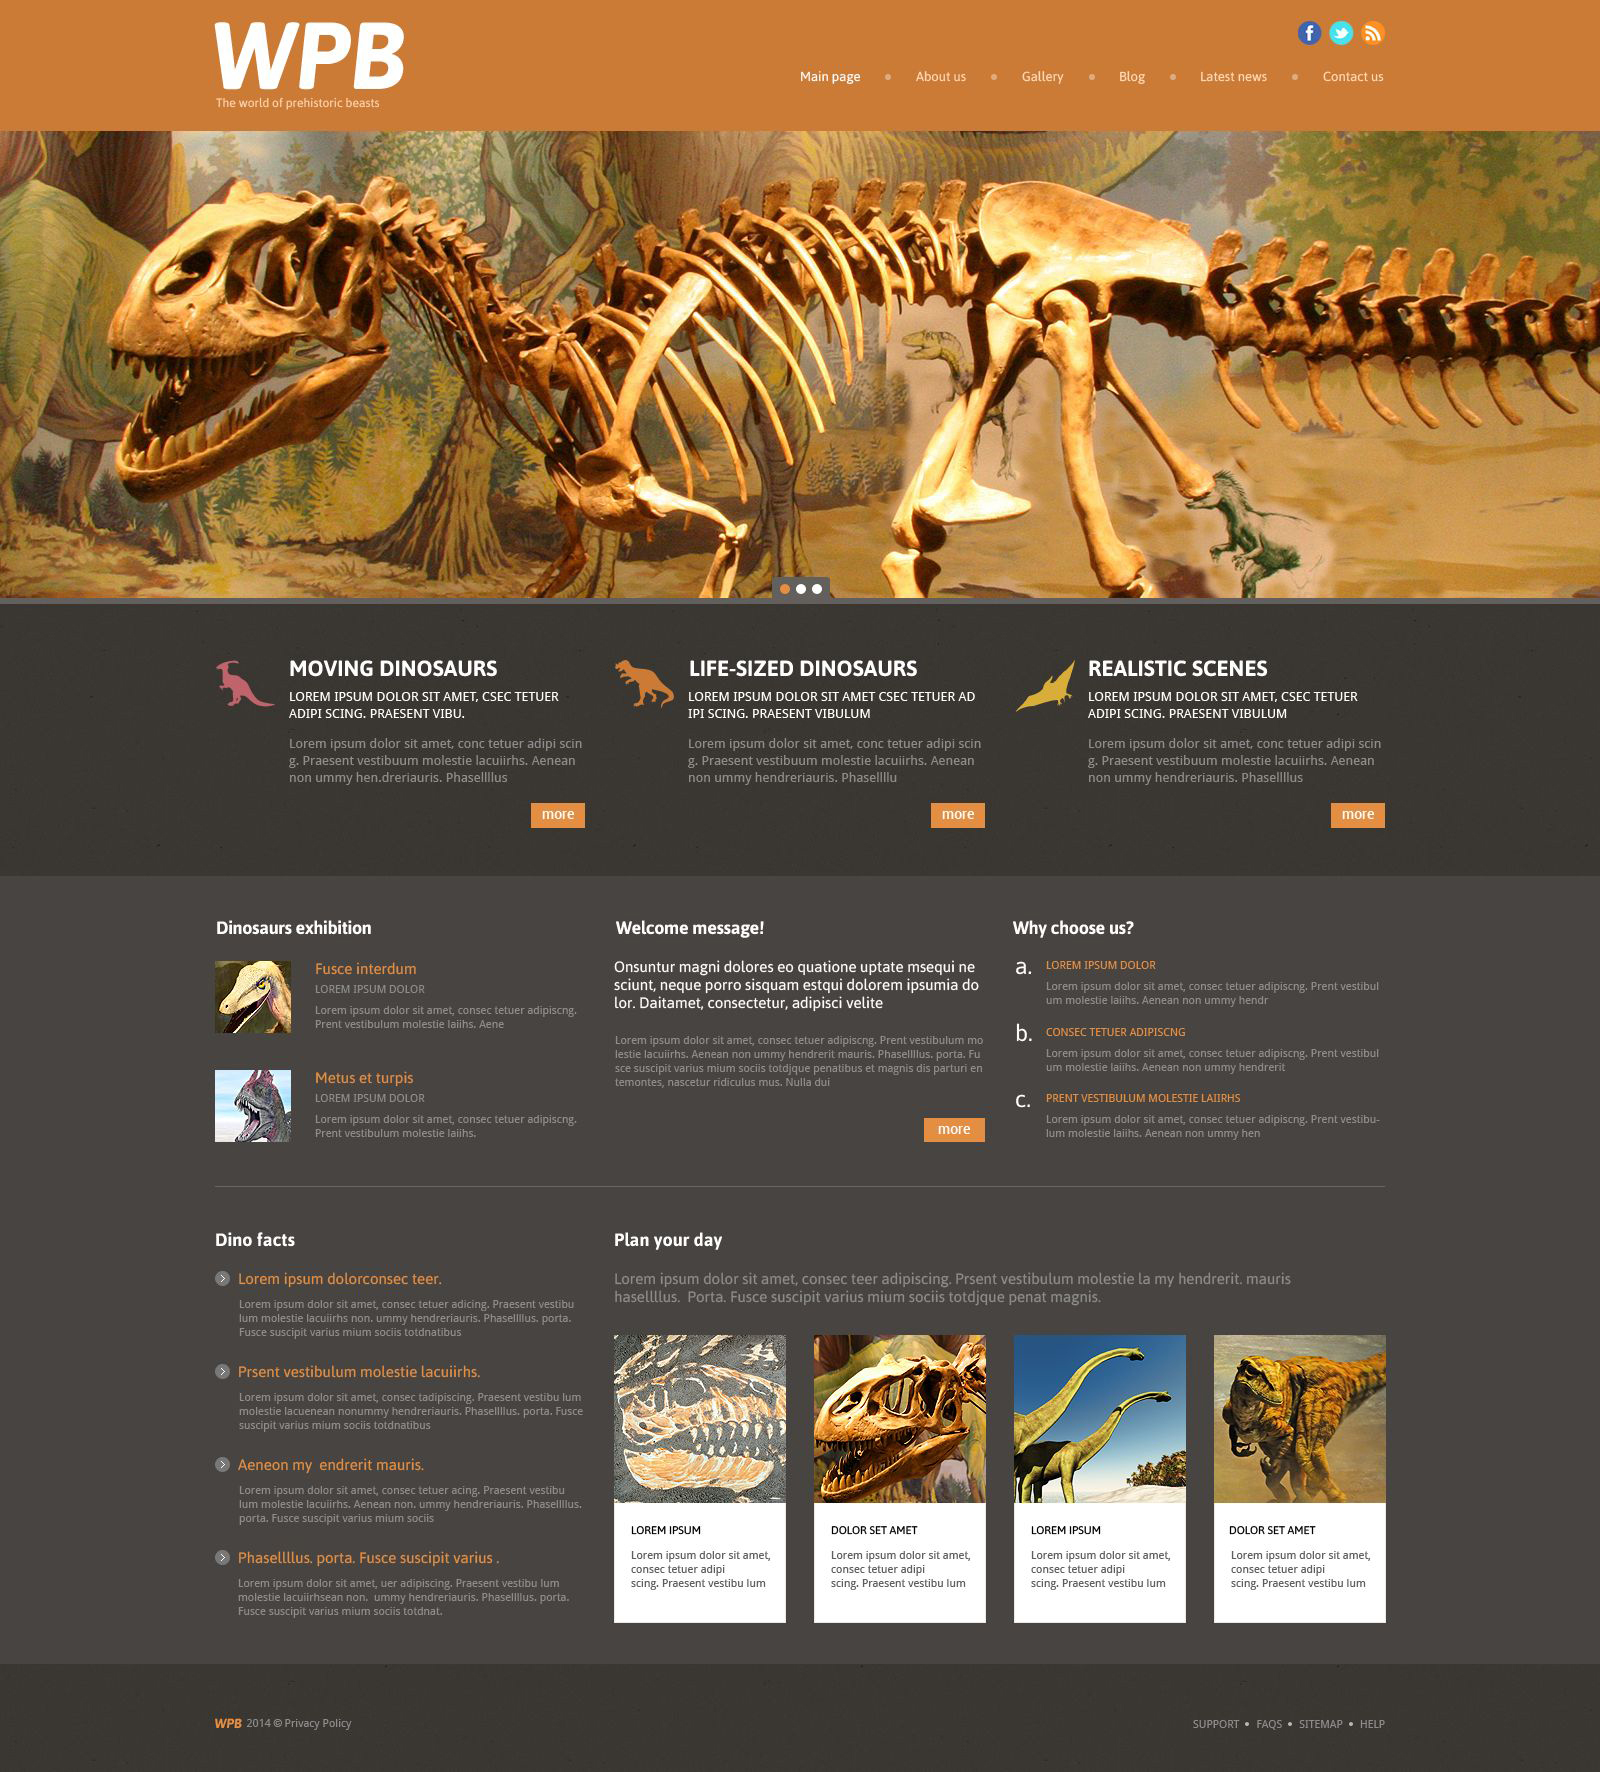 The Wpb Dinosaur Park WordPress Design 53998, one of the best WordPress themes of its kind (entertainment, most popular), also known as wpb Dinosaur park WordPress template, museum WordPress template, pterodactyl WordPress template, brontosaur WordPress template, Prozavropoda Plateosaurus Ankhizavr Megalneusaurus gallery WordPress template, interactive WordPress template, exposition WordPress template, presentation WordPress template, calendar WordPress template, specials WordPress template, offers WordPress template, visitors WordPress template, collection WordPress template, exhibition WordPress template, education WordPress template, events WordPress template, tours WordPress template, programs WordPress template, illustration WordPress template, resources and related with wpb Dinosaur park, museum, pterodactyl, brontosaur, Prozavropoda Plateosaurus Ankhizavr Megalneusaurus gallery, interactive, exposition, presentation, calendar, specials, offers, visitors, collection, exhibition, education, events, tours, programs, illustration, resources, etc.